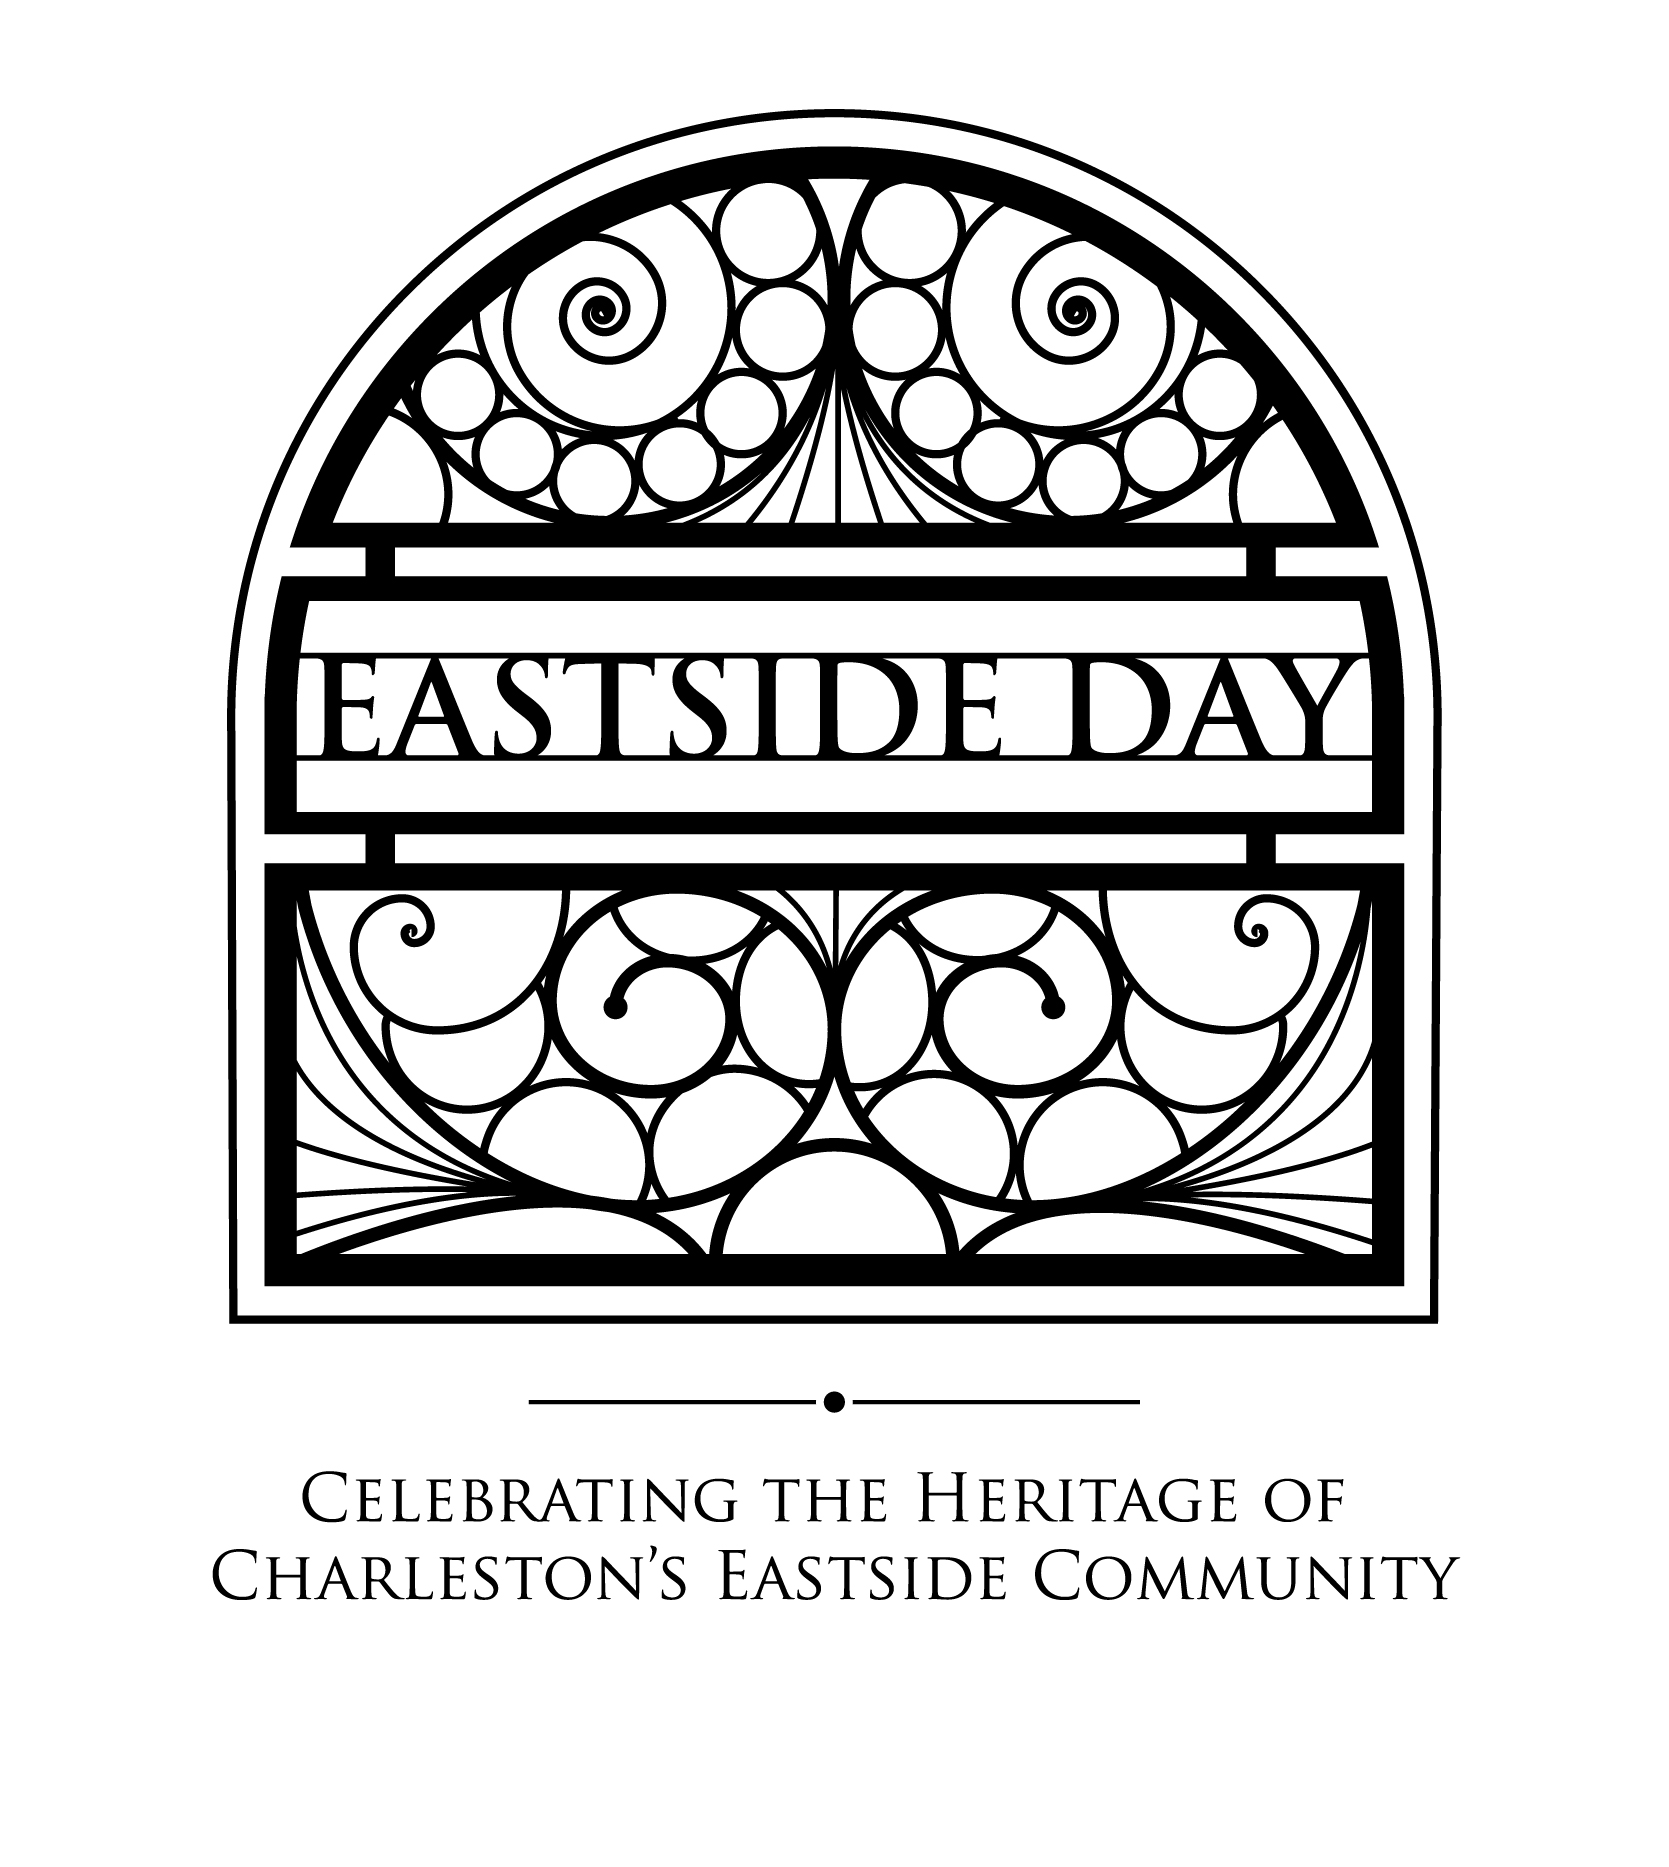 Eastside Day logo